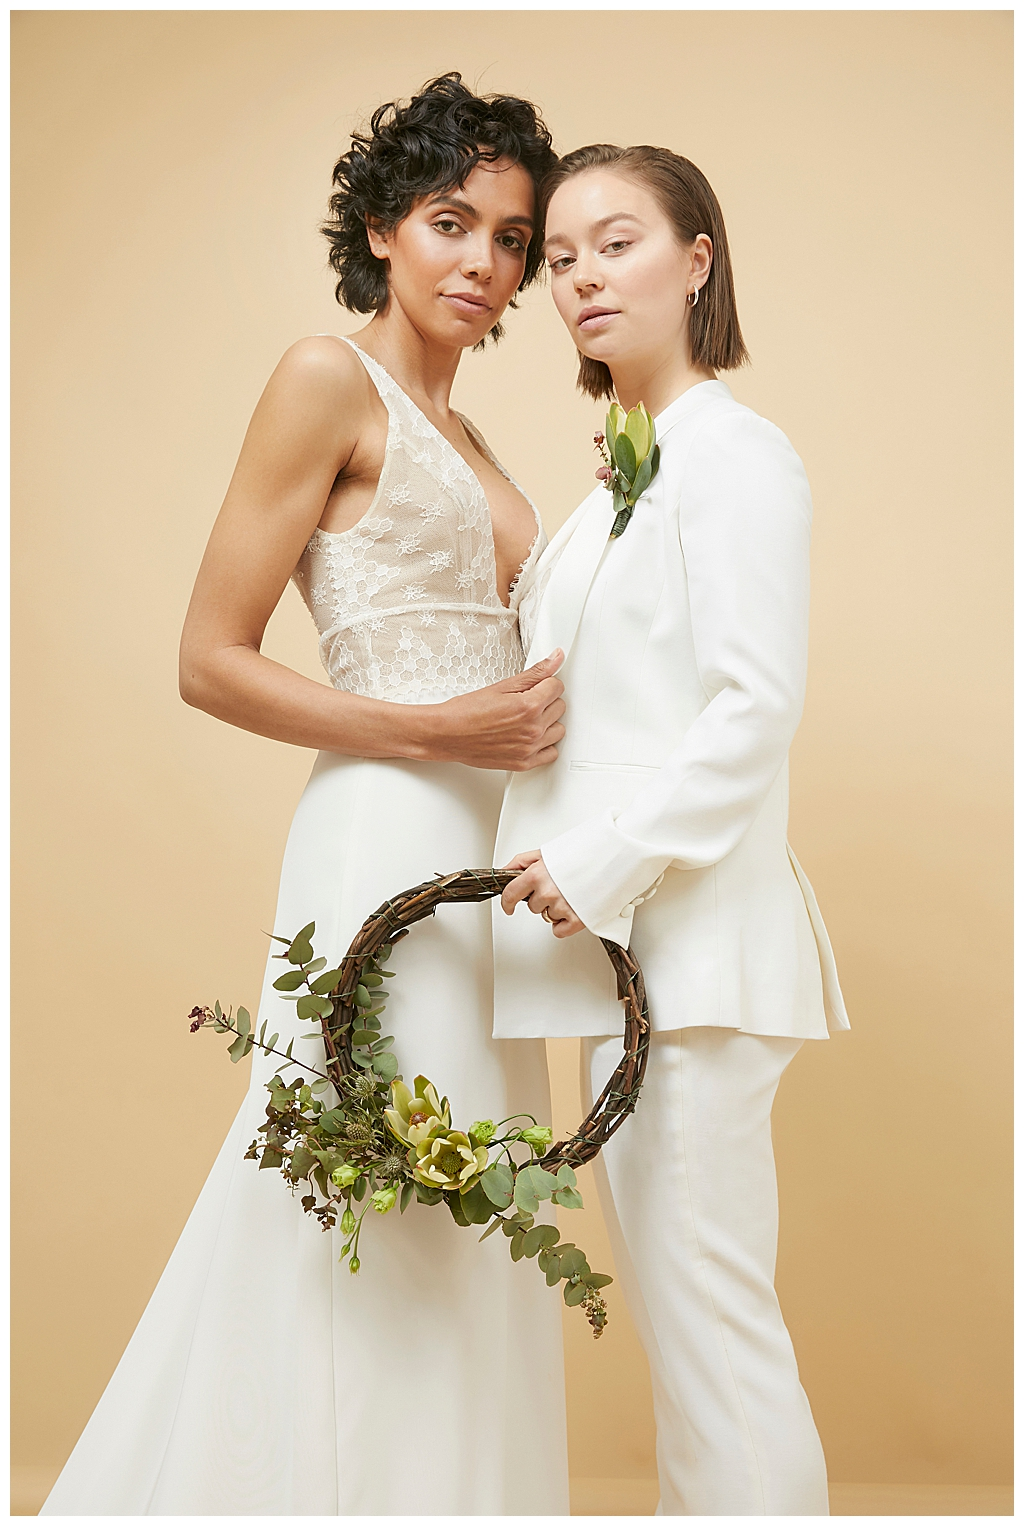 lgbtq-wedding-fashion-editorial-10